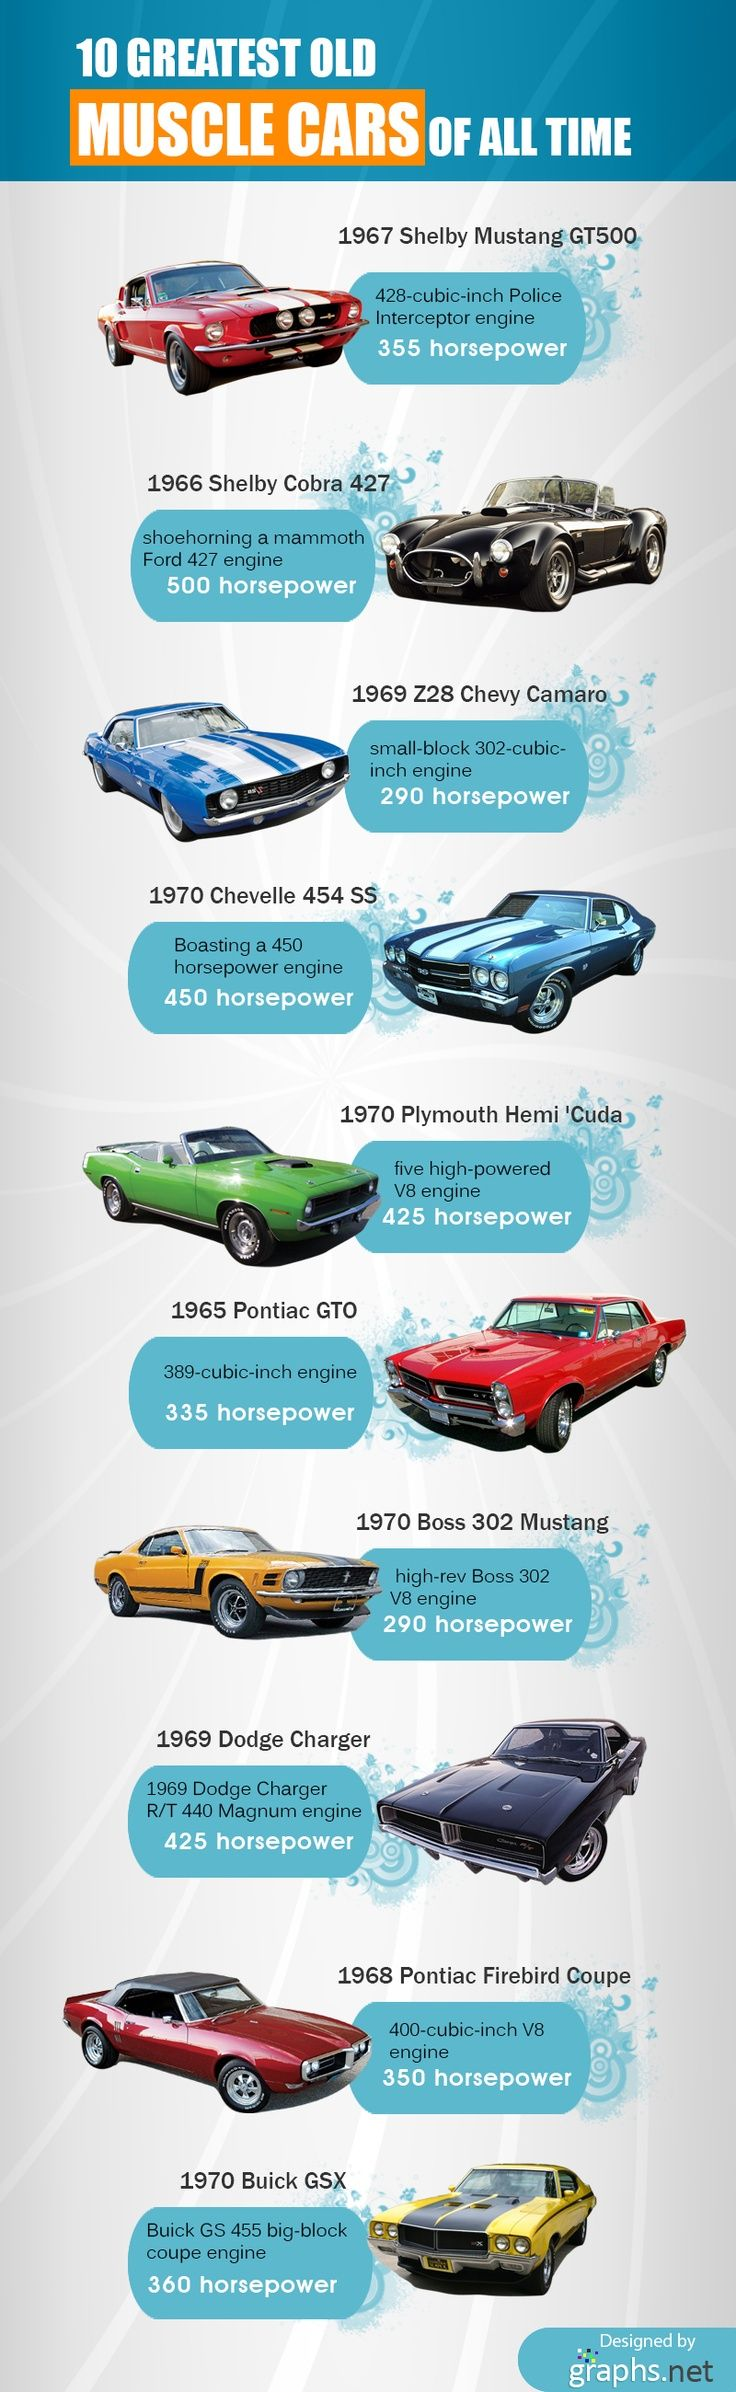 The Most Iconic Muscle Cars | Muscles, Cars and Mustang